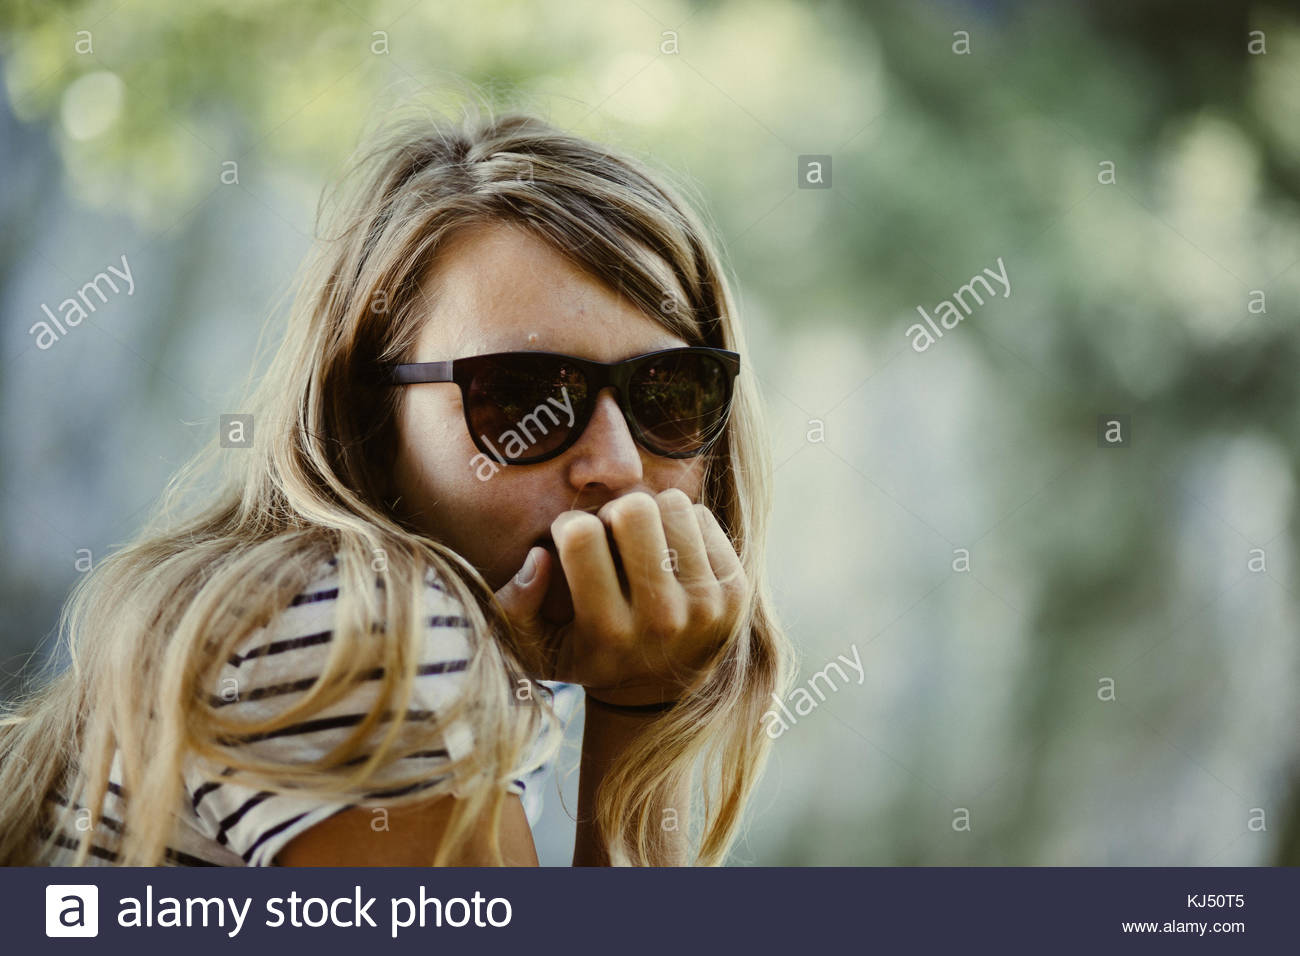 Blond girl with sunglasses - Stock Image